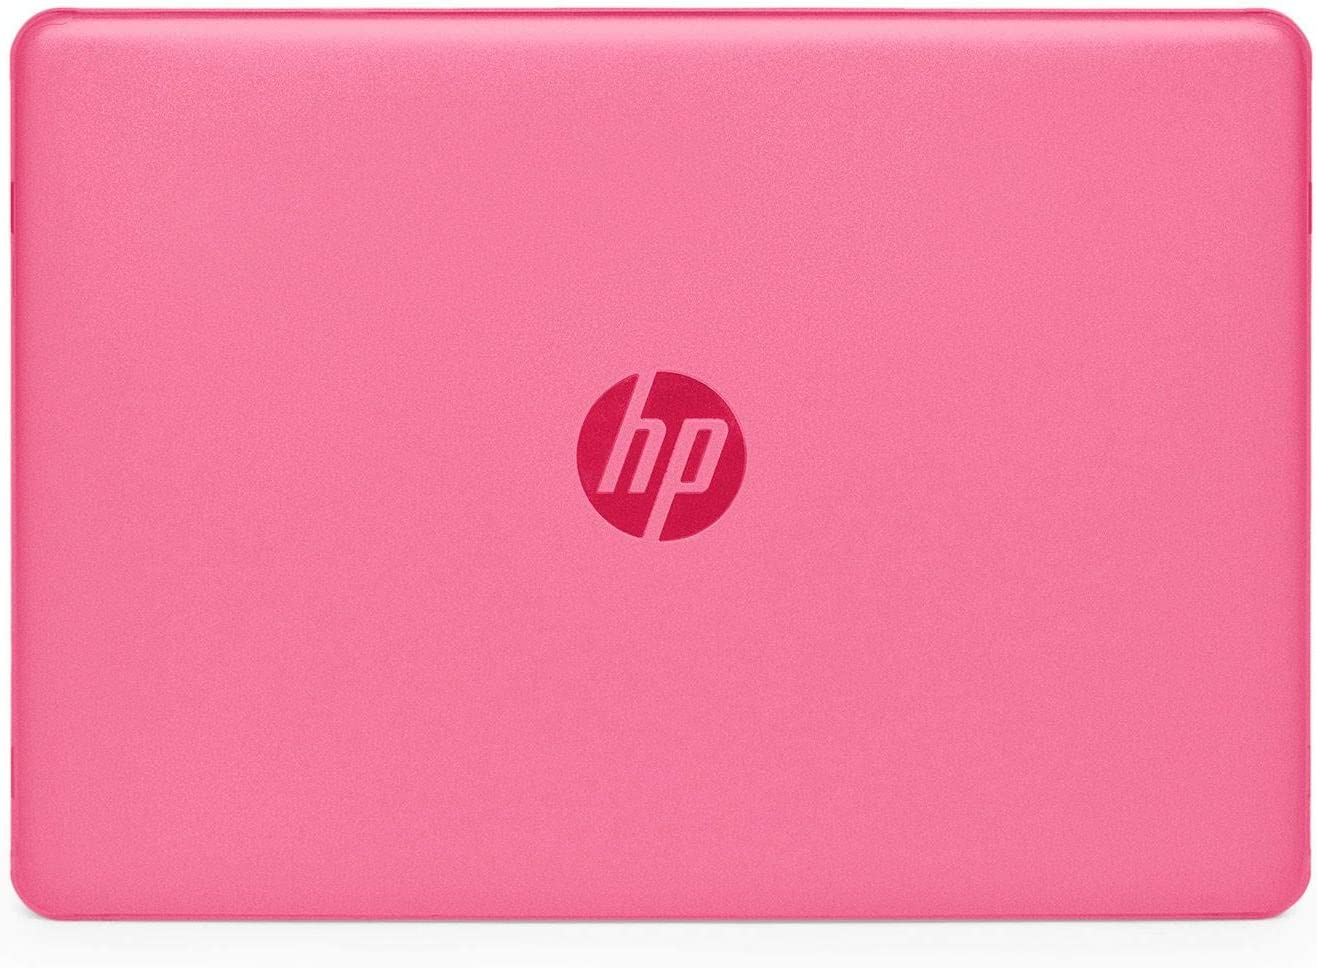 "mCover Hard Shell Case for 2020 14"" HP Pavilion 14-DQxxxx Series (NOT Compatible with Other HP Pavilion Series) laptops (Pink)"